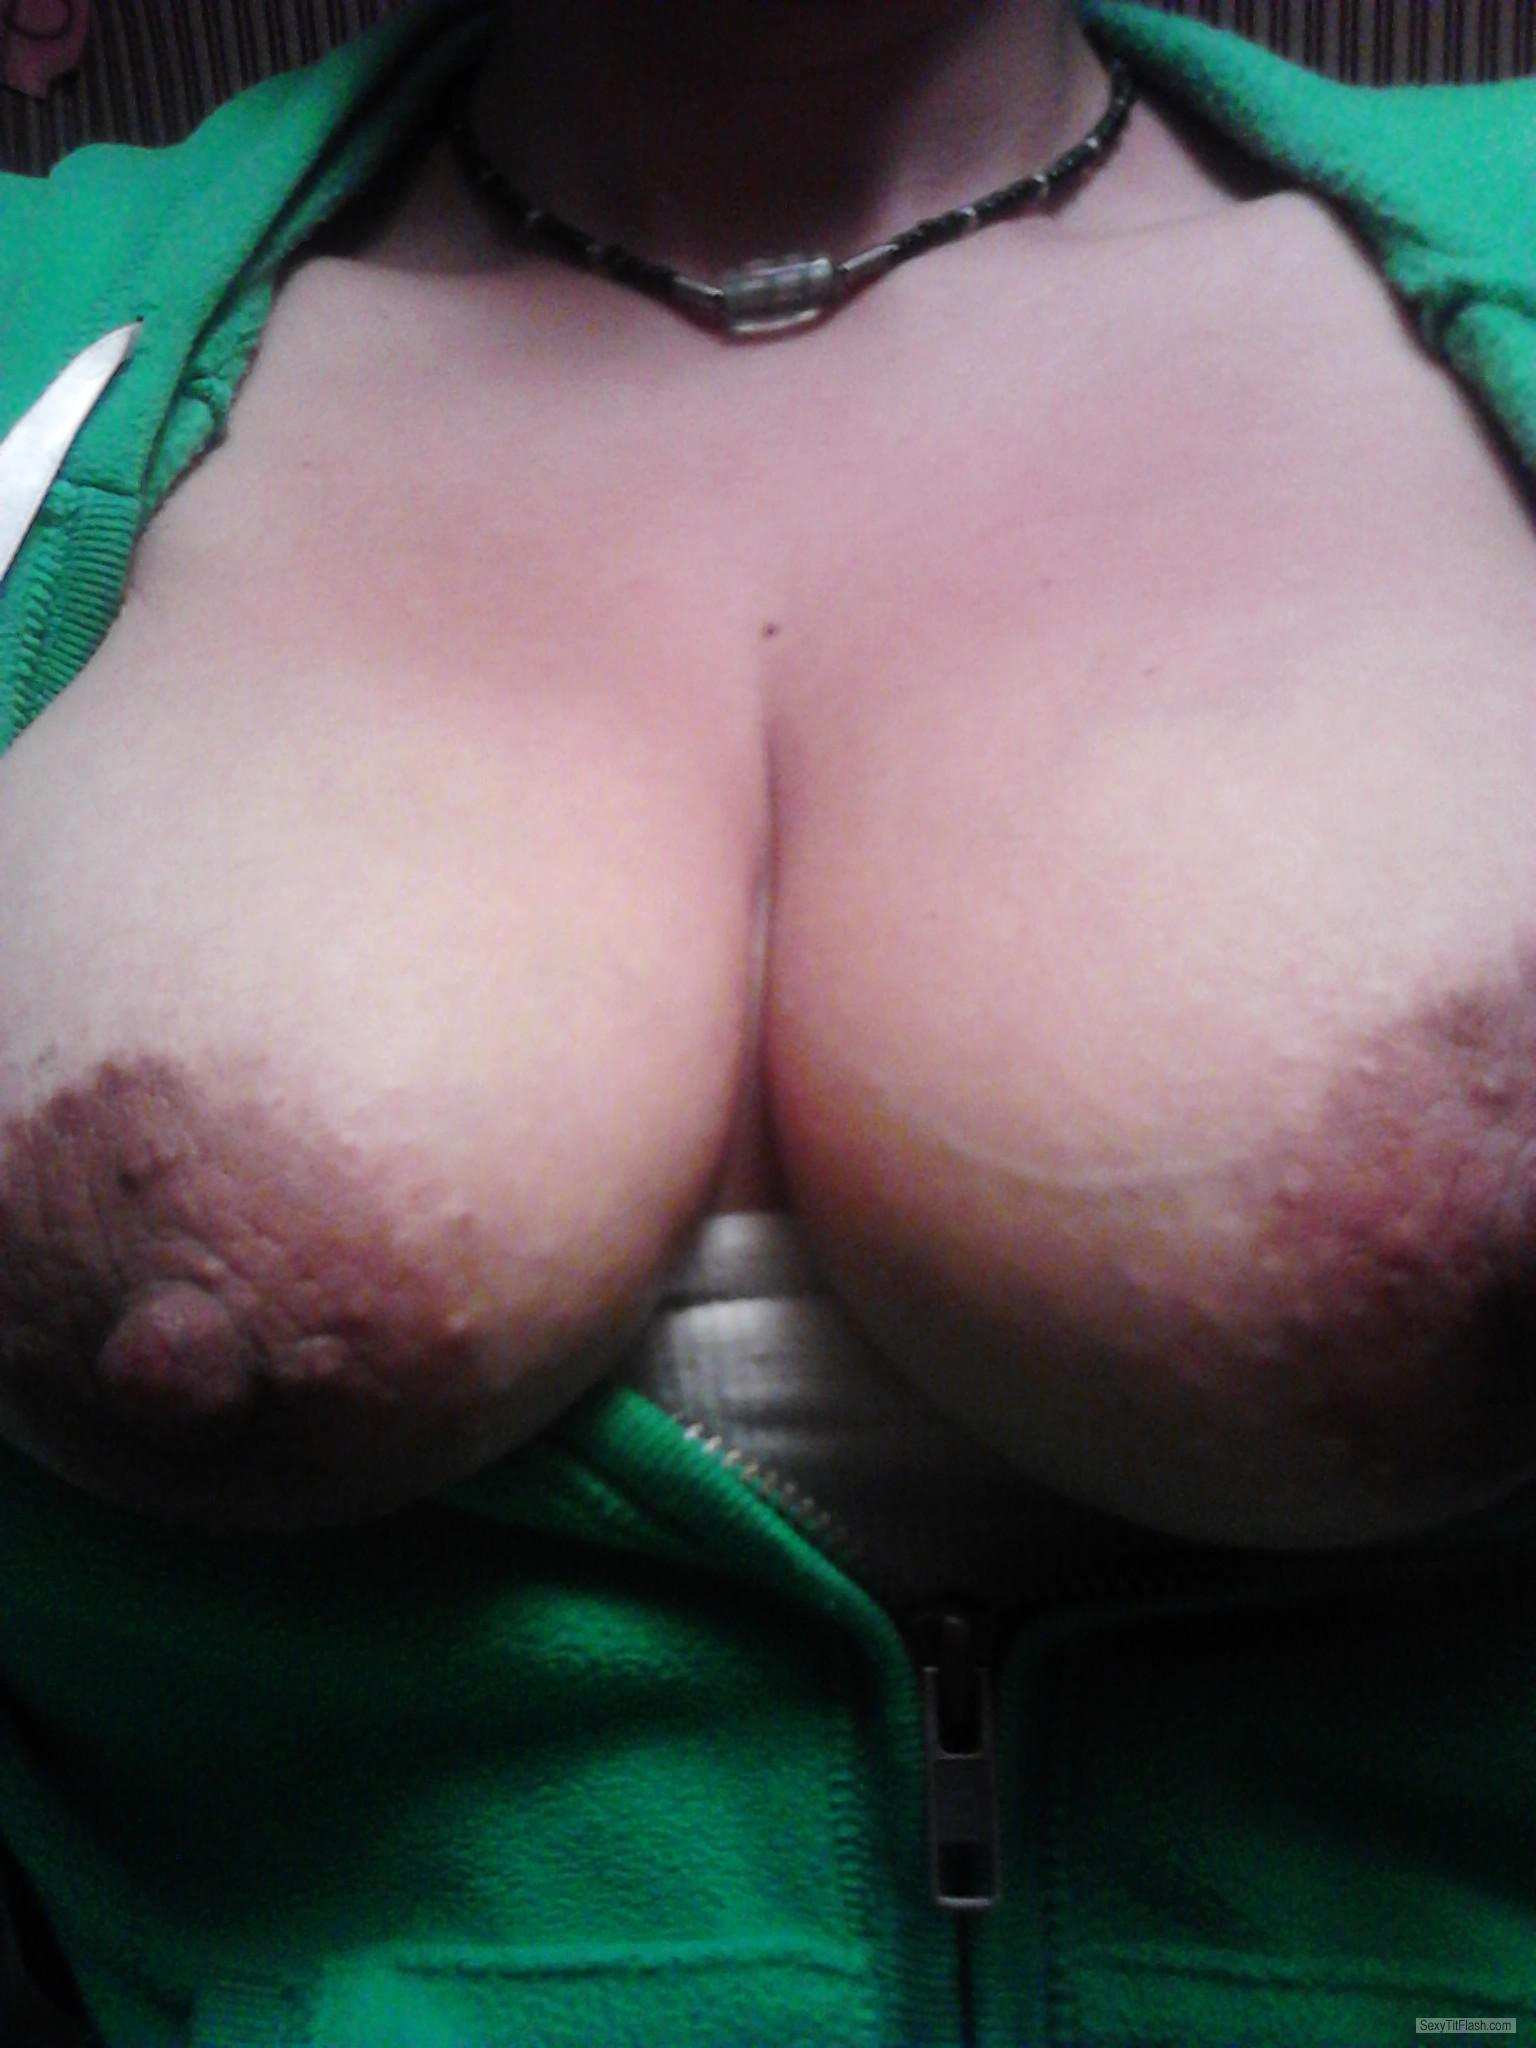 Tit Flash: Wife's Big Tits - Roxy1976 from United States